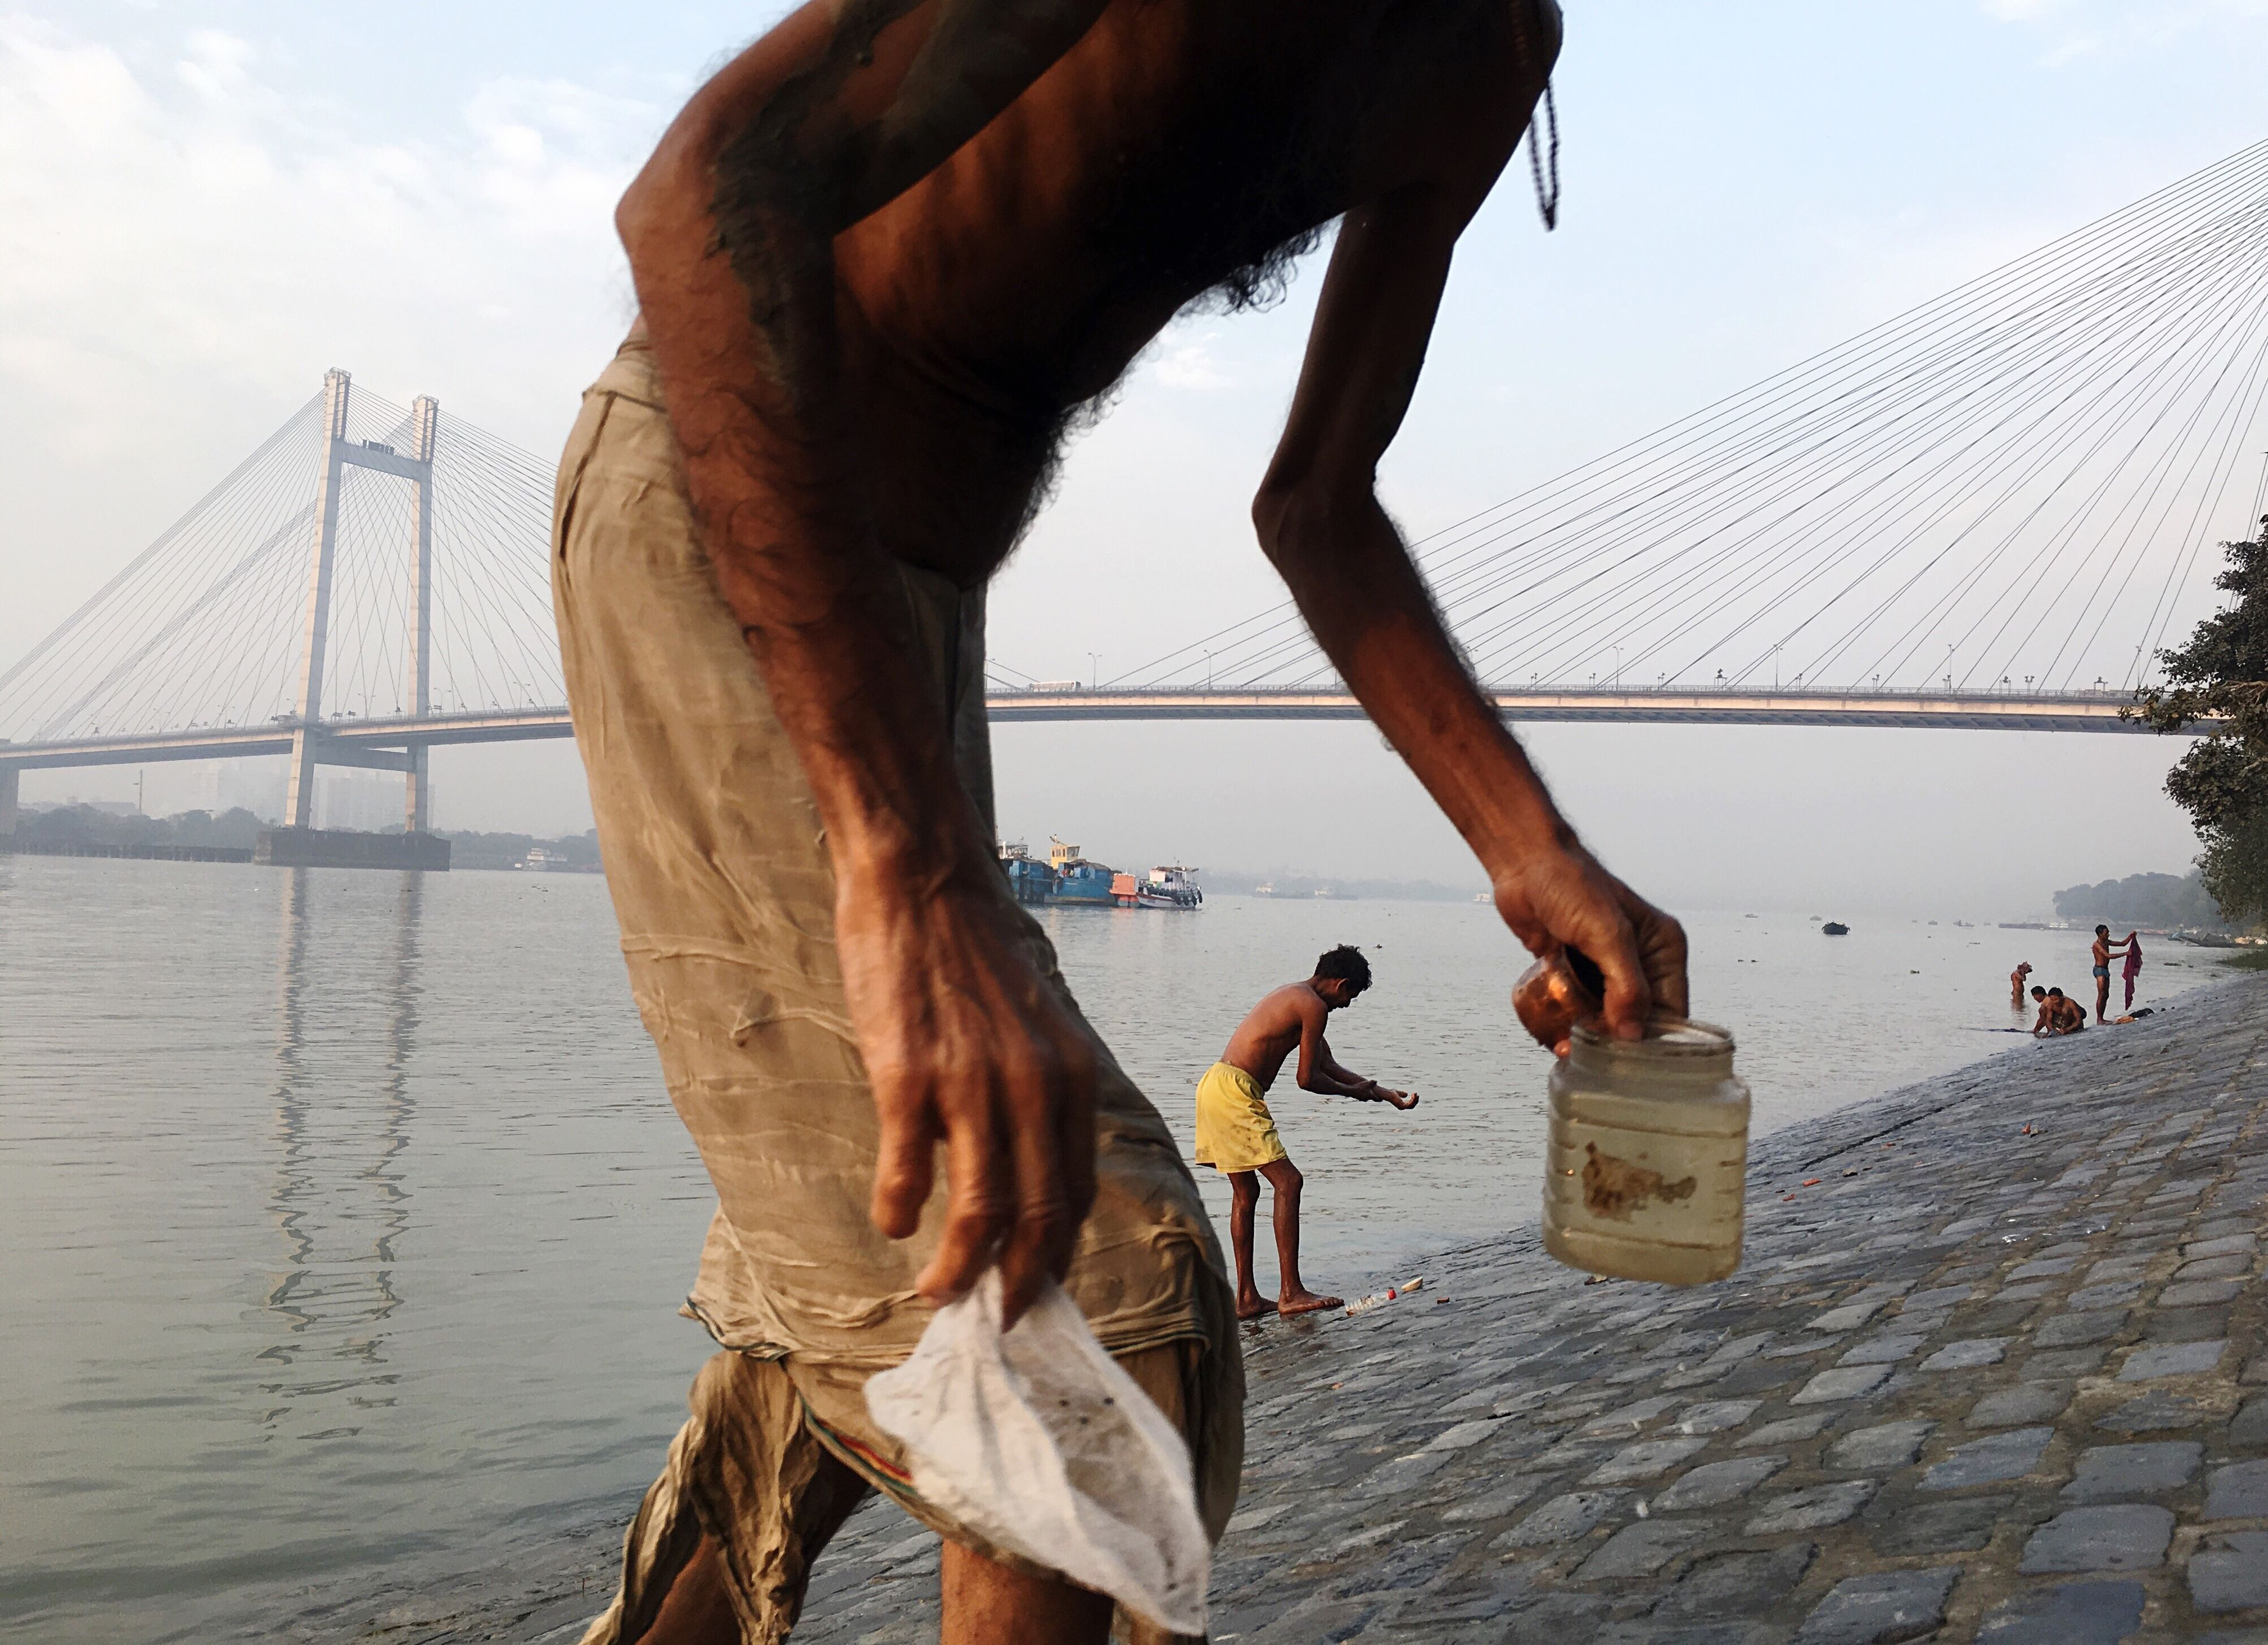 bridge - man made structure, water, real people, connection, architecture, sky, day, outdoors, built structure, men, suspension bridge, lifestyles, river, bridge, leisure activity, shirtless, women, one person, nature, city, mammal